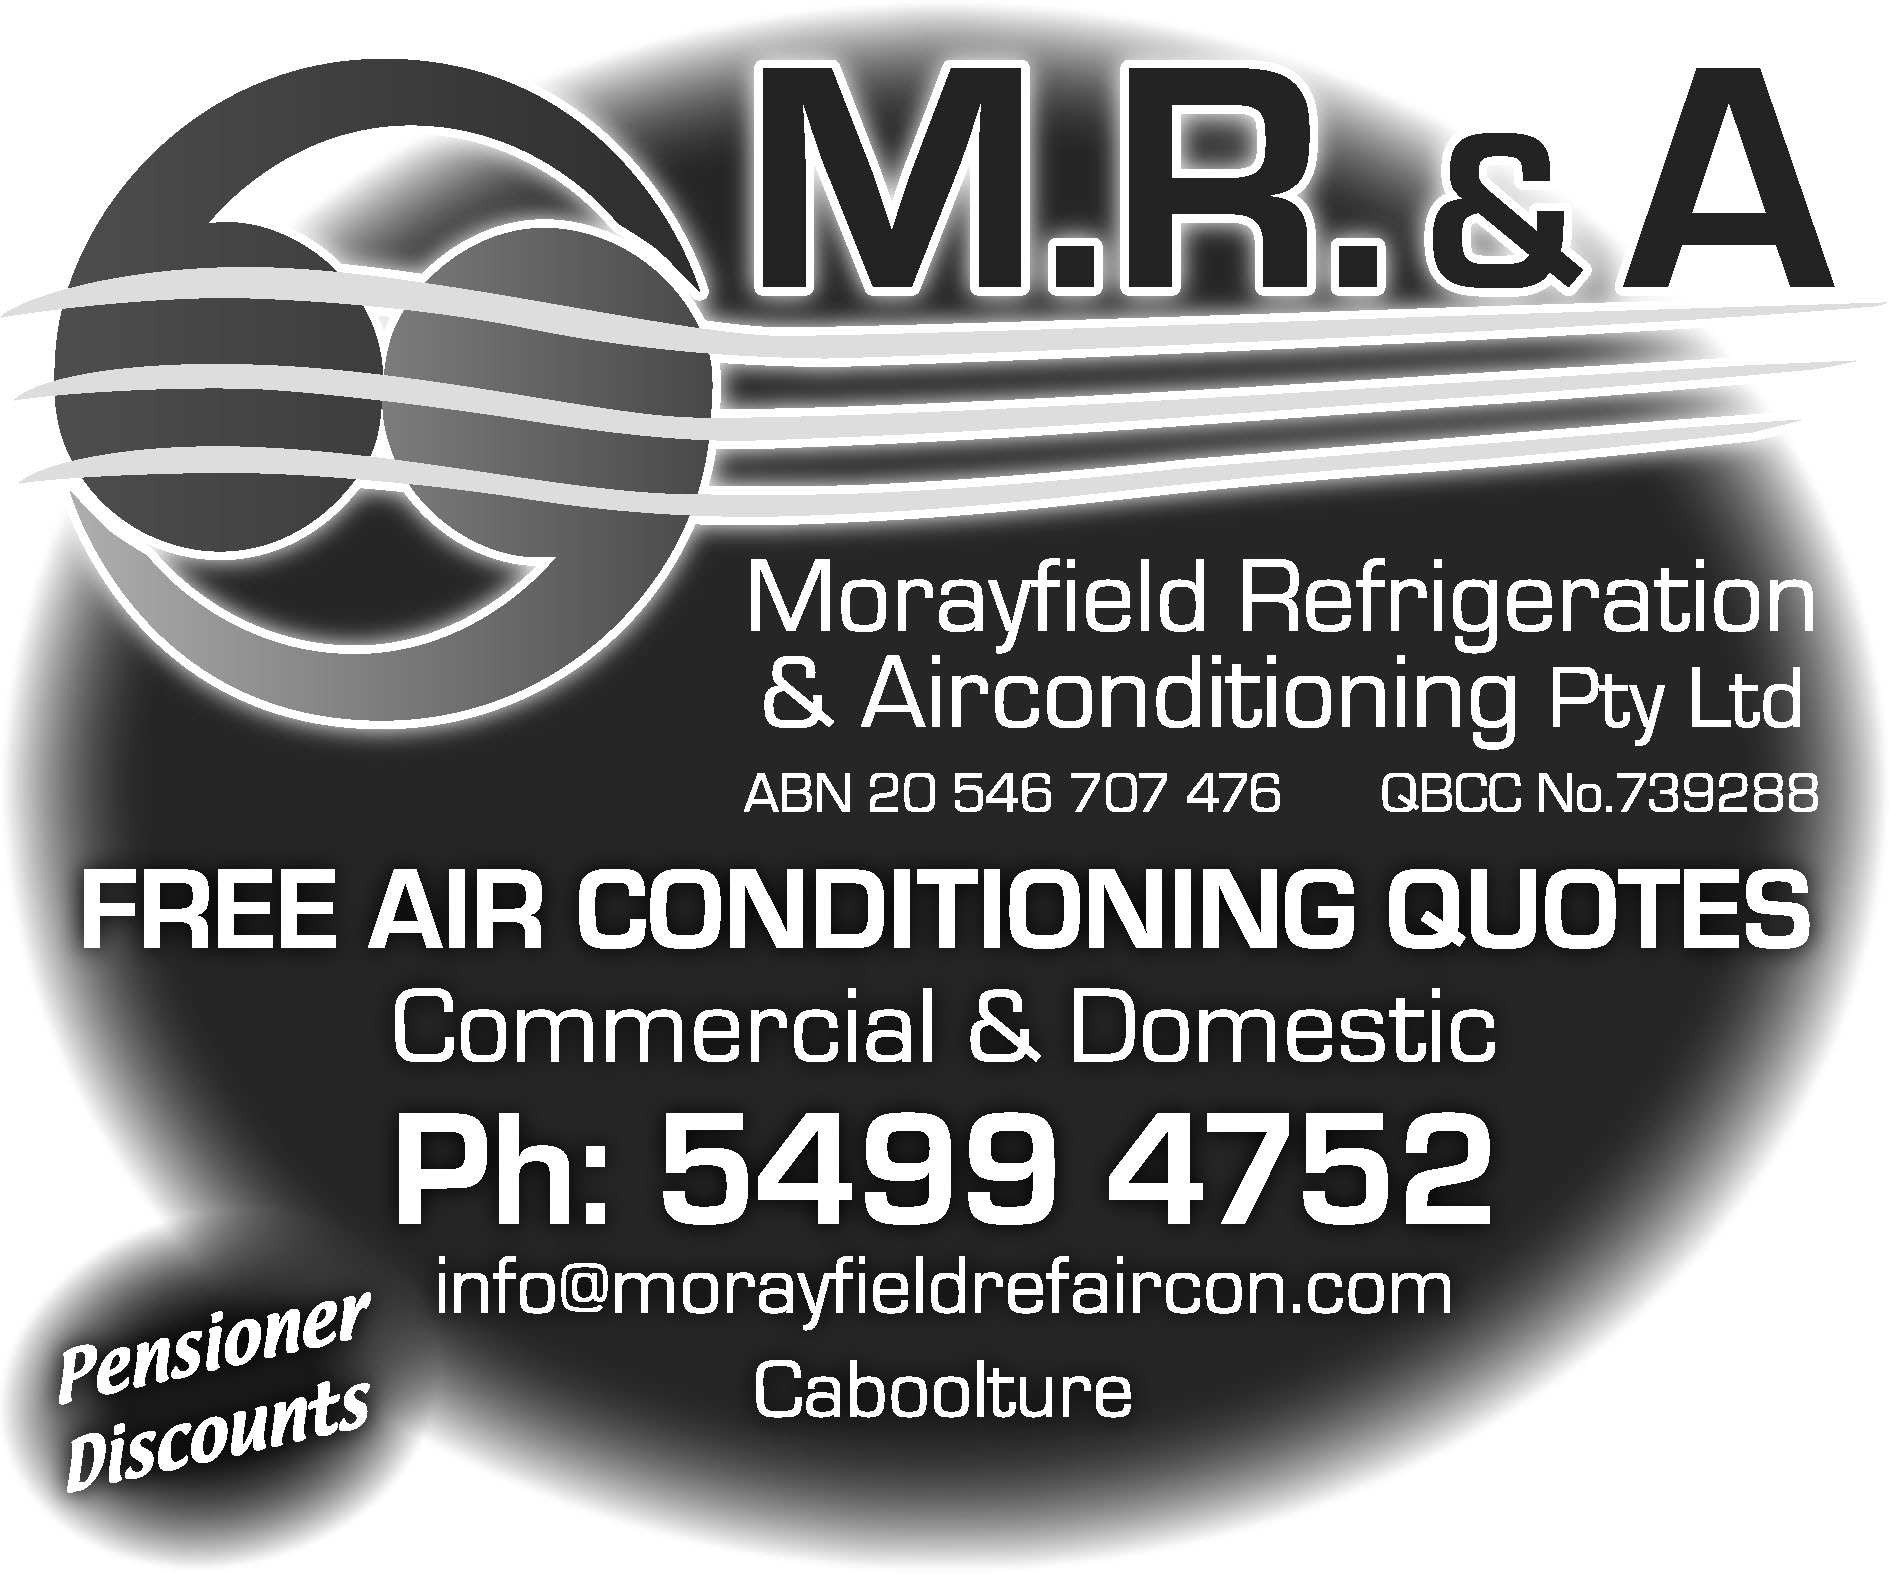 Morayfield Refrigeration & Airconditioning P/L - Air Conditioning - Home